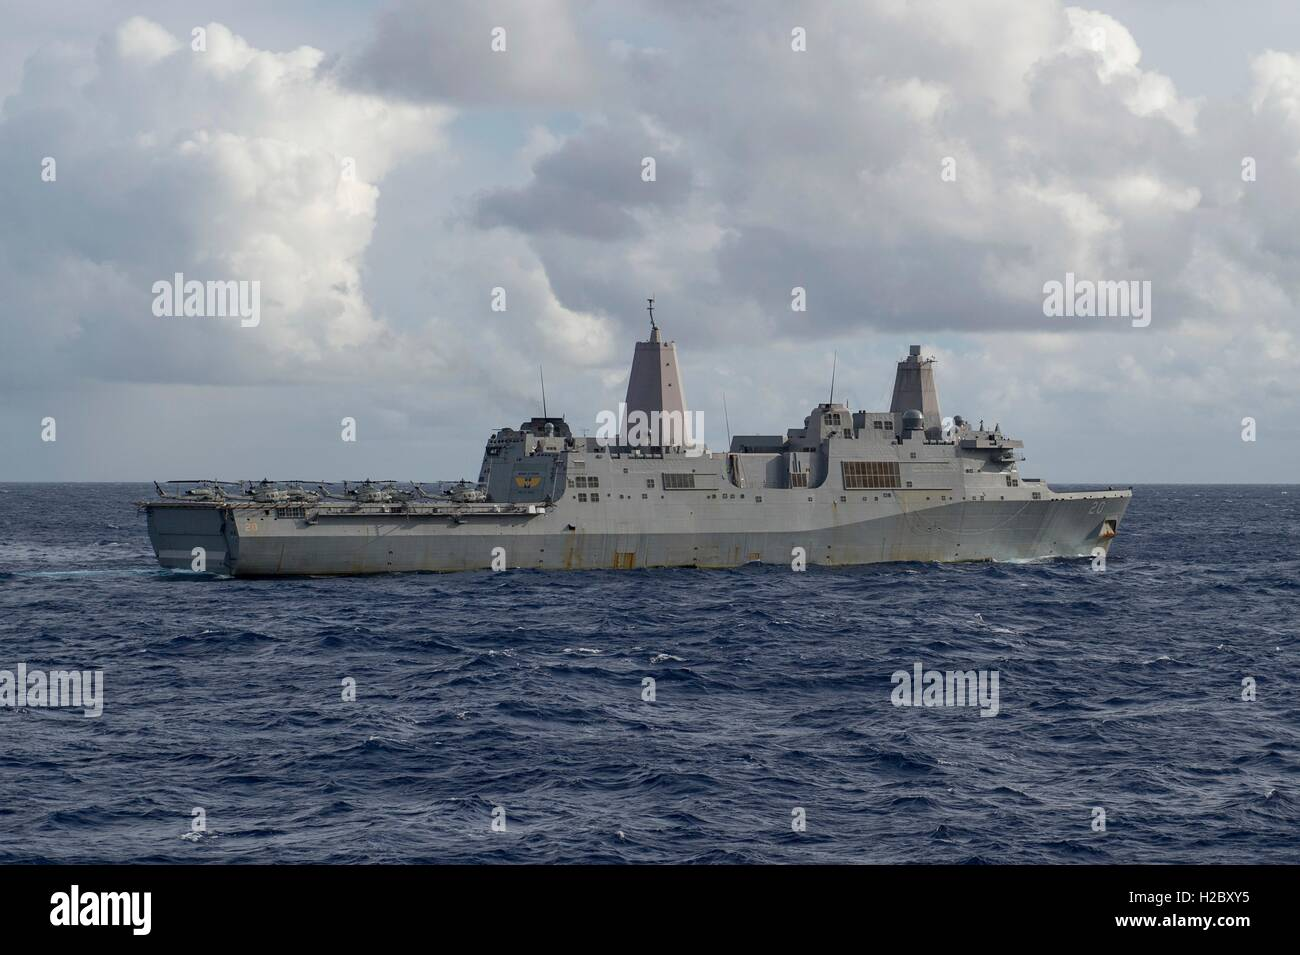 The USN San Antonio-class amphibious transport dock ship USS Green Bay steams in formation to signify the completion - Stock Image